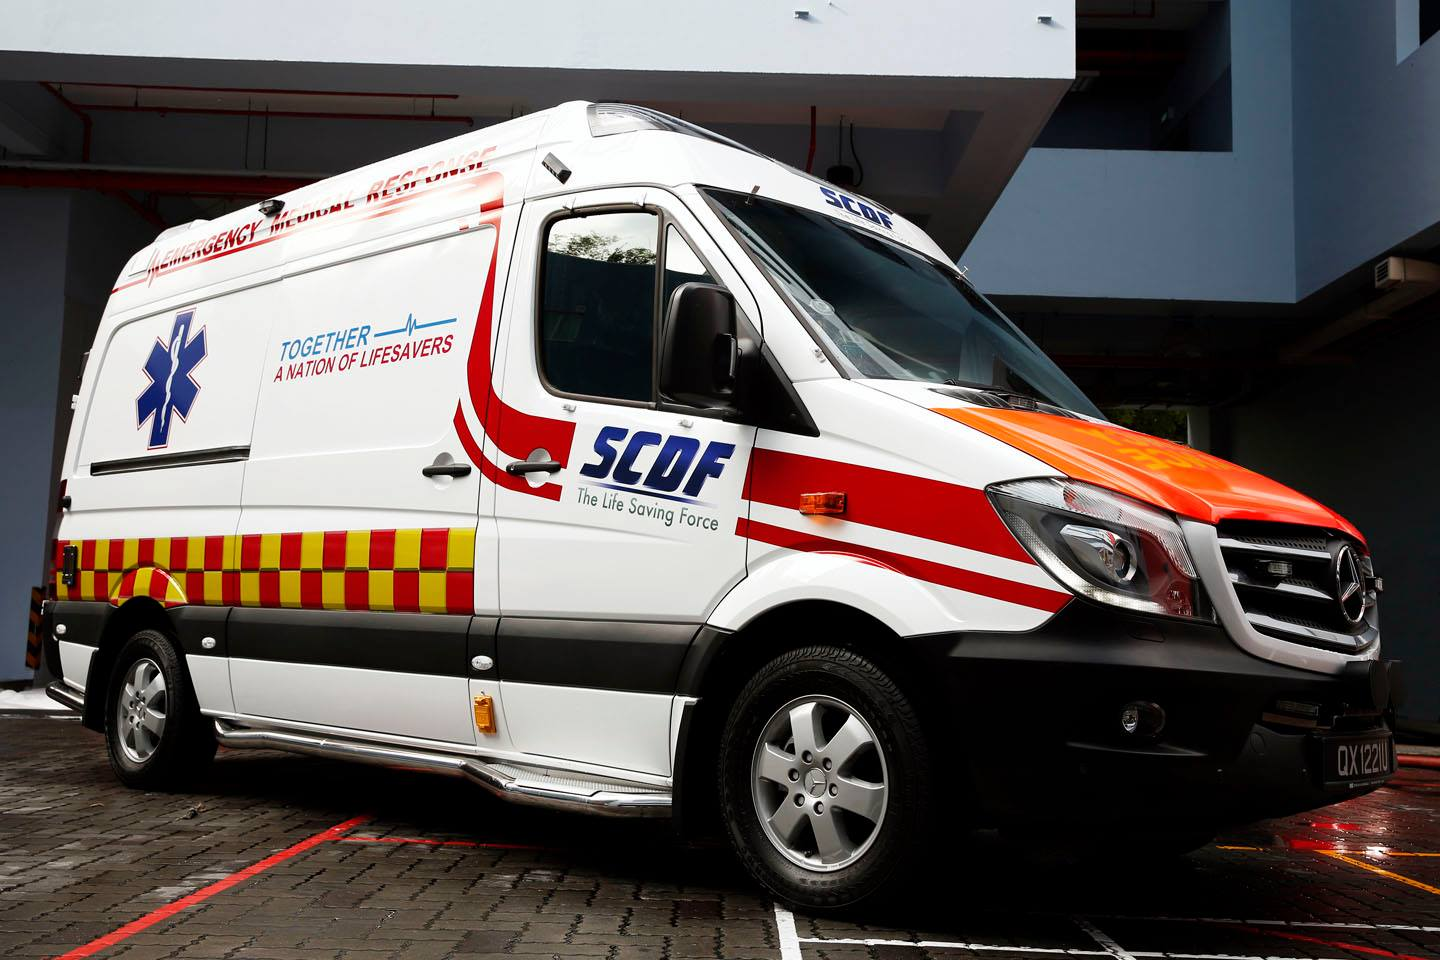 SCDF ambulances should only be called during real medical emergencies